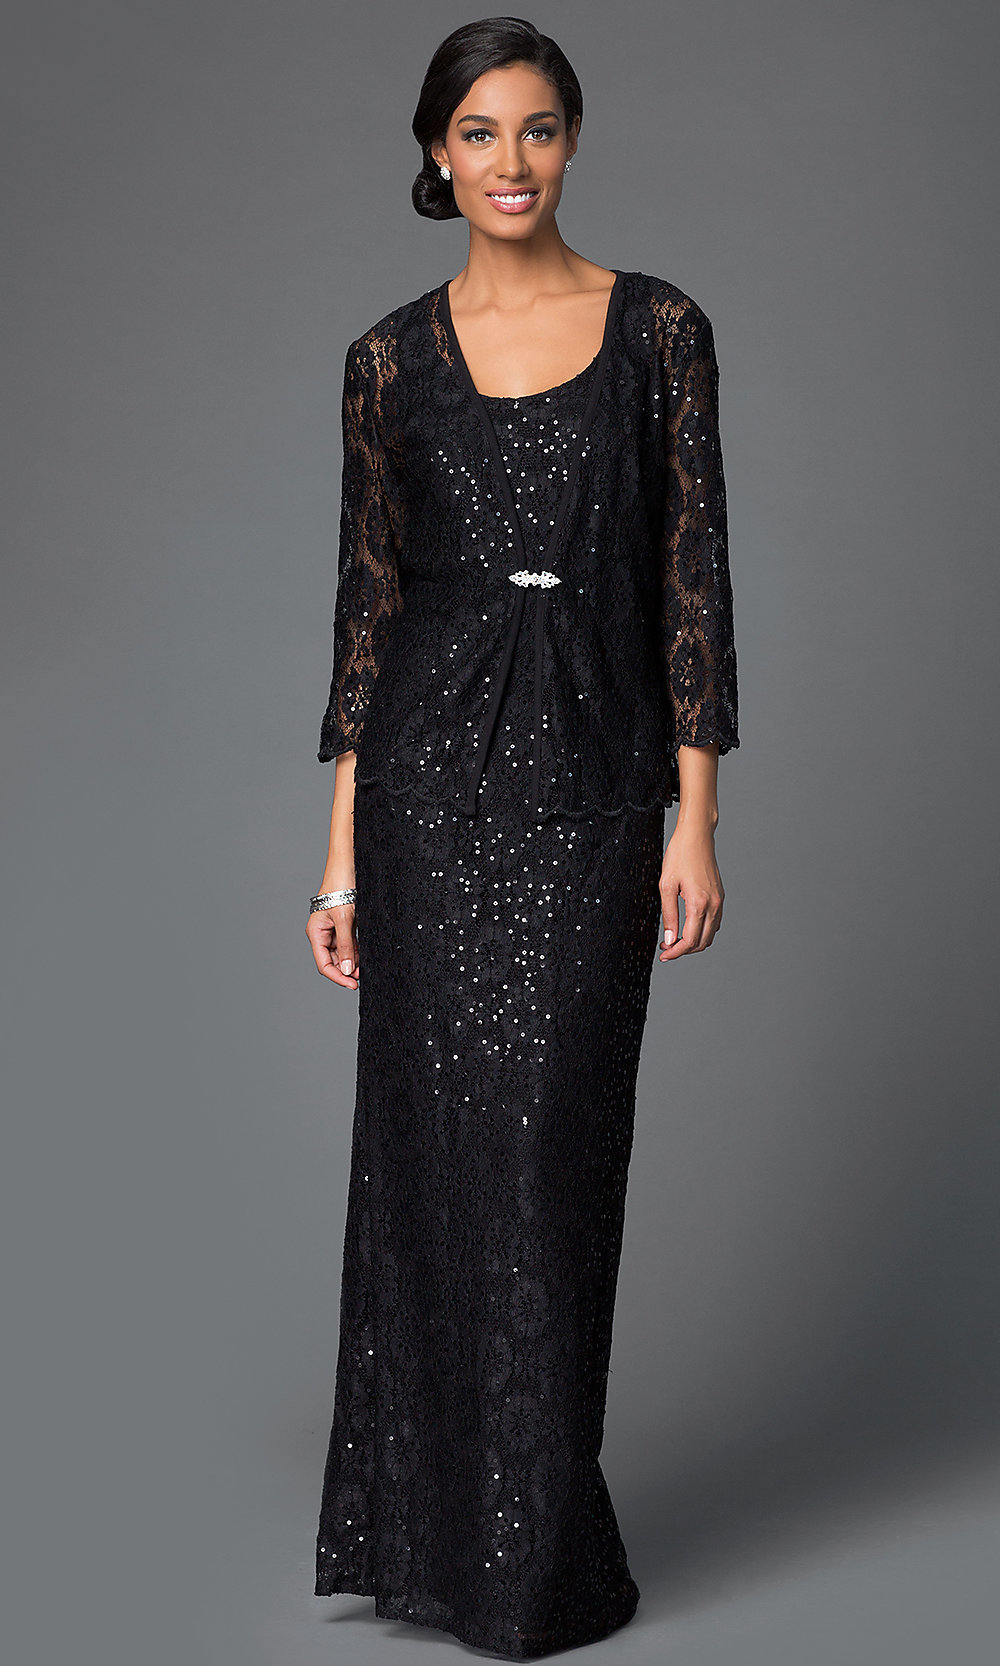 Sequined Lace Formal Dress With Matching Jacket